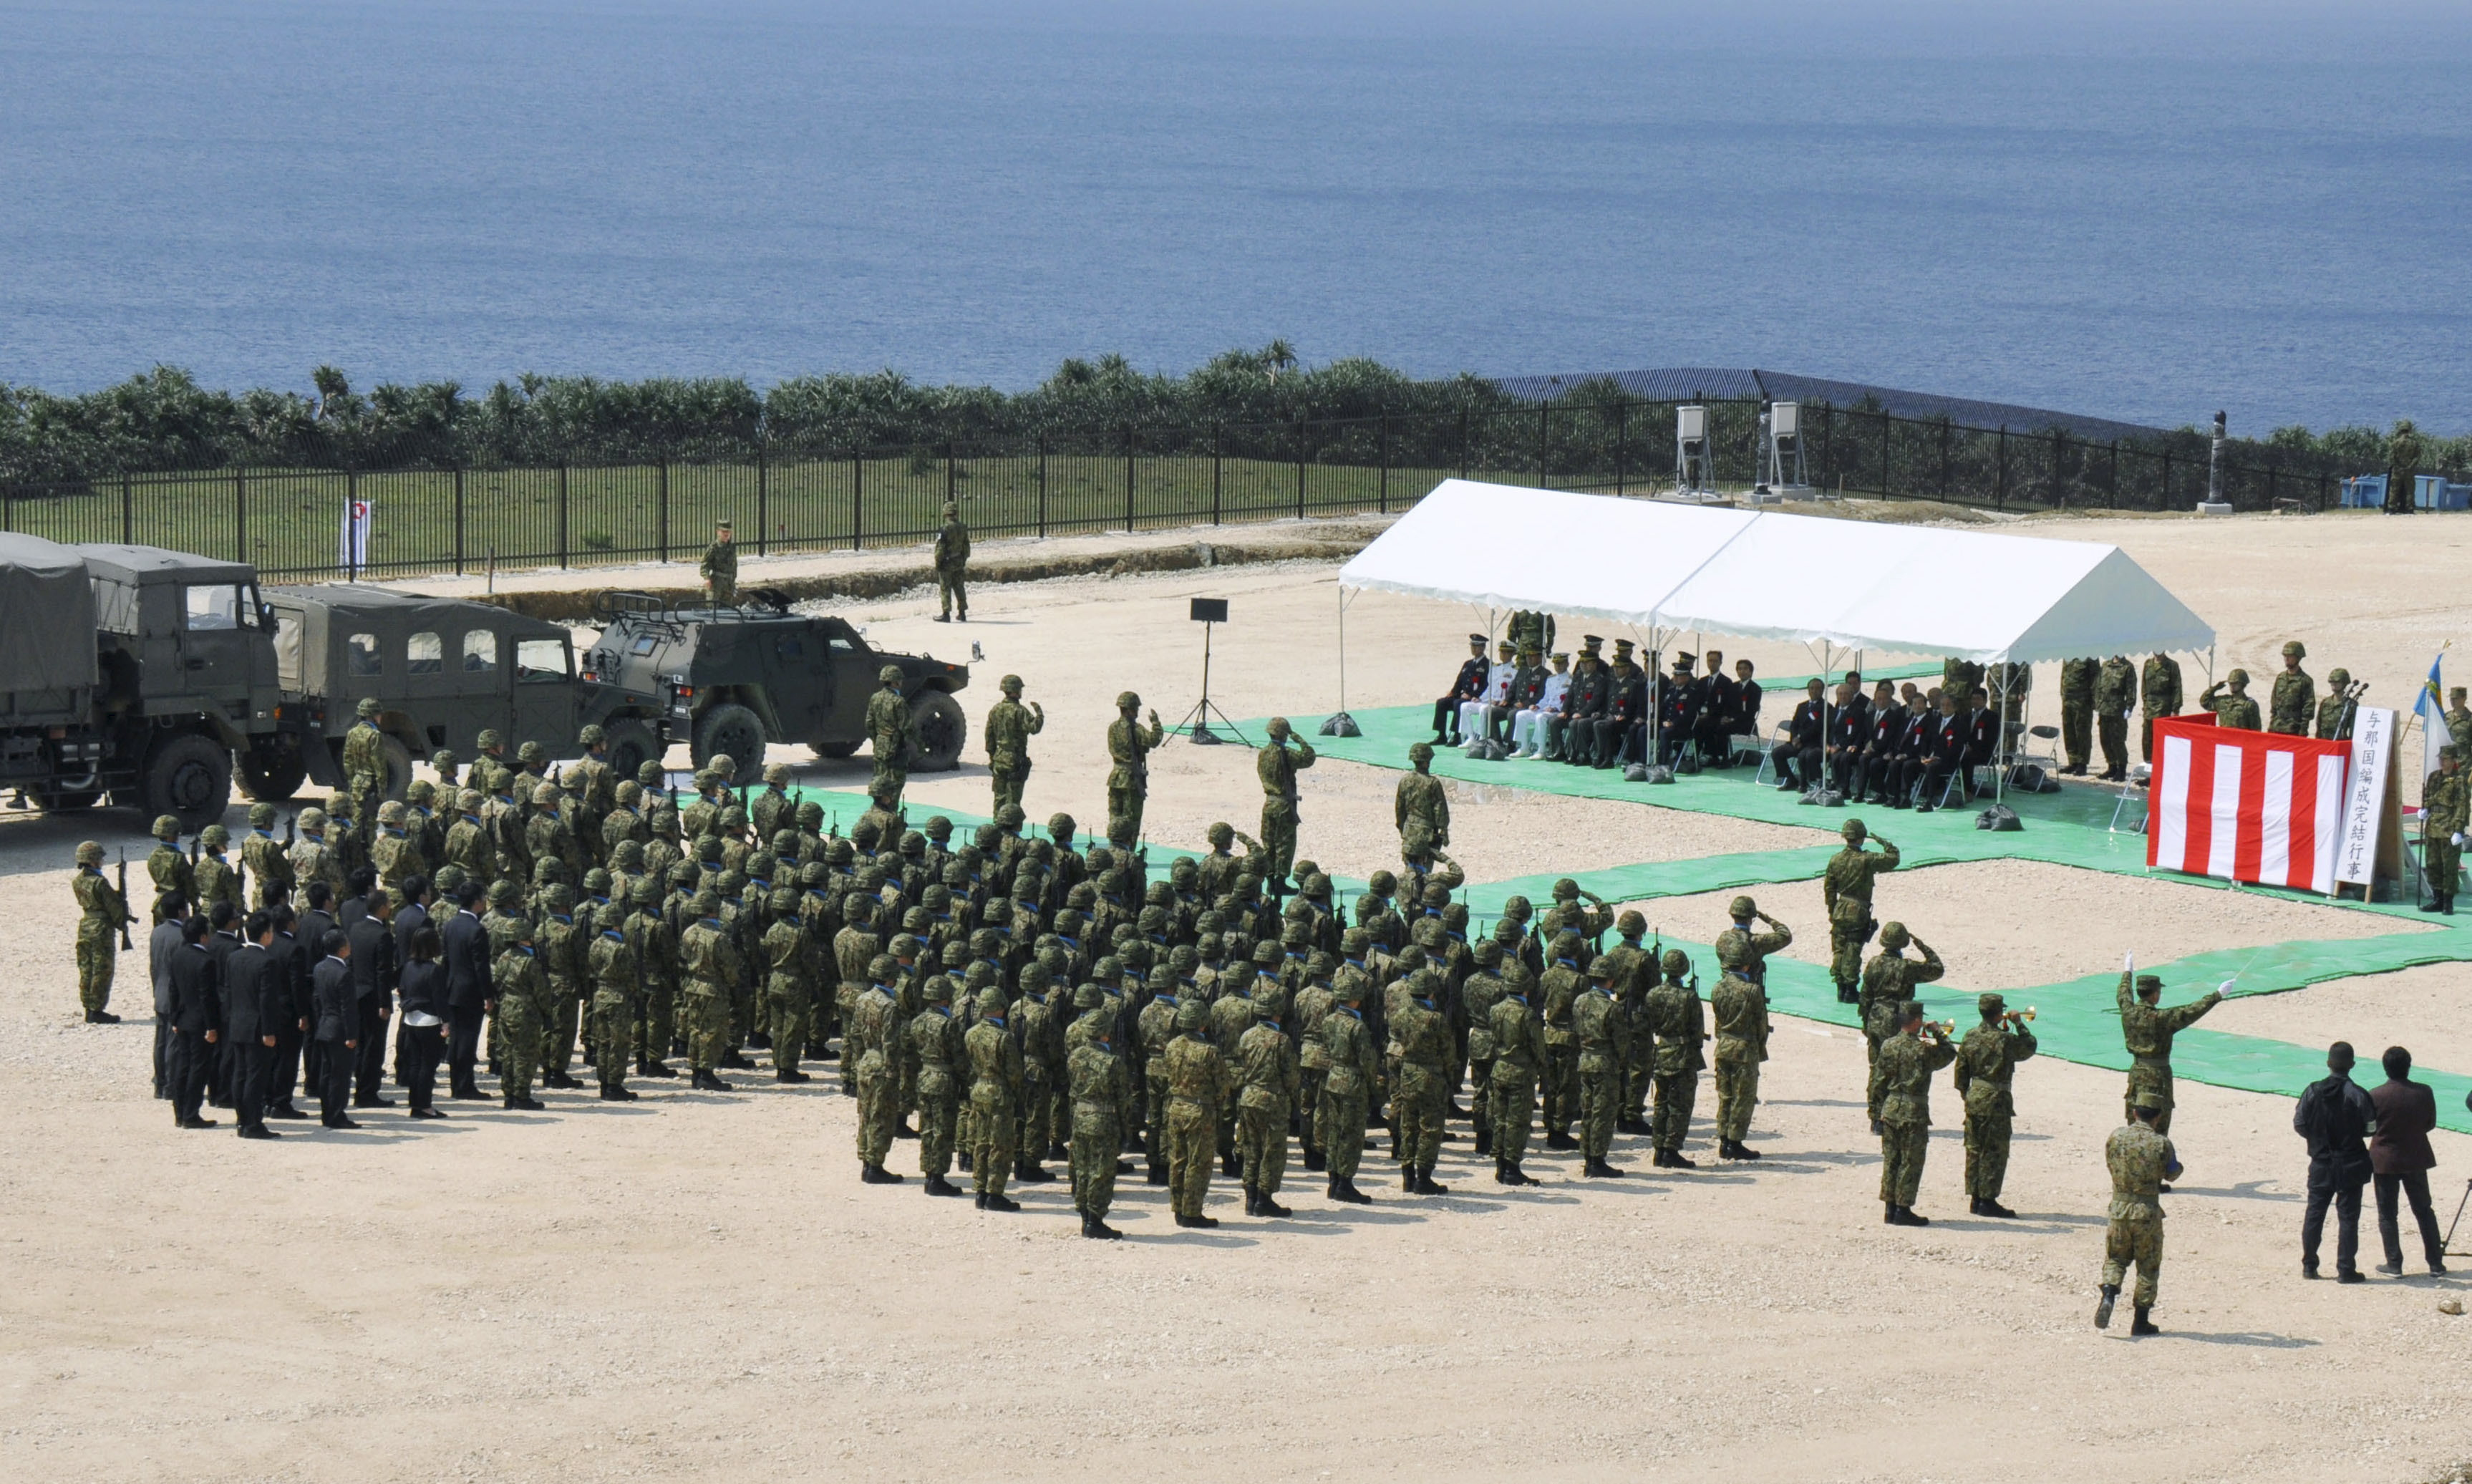 Members of Japan's Self Defence Force hold an opening ceremony of a new military base on the island of Yonaguni in the Okinawa prefecture, March 28, 2016